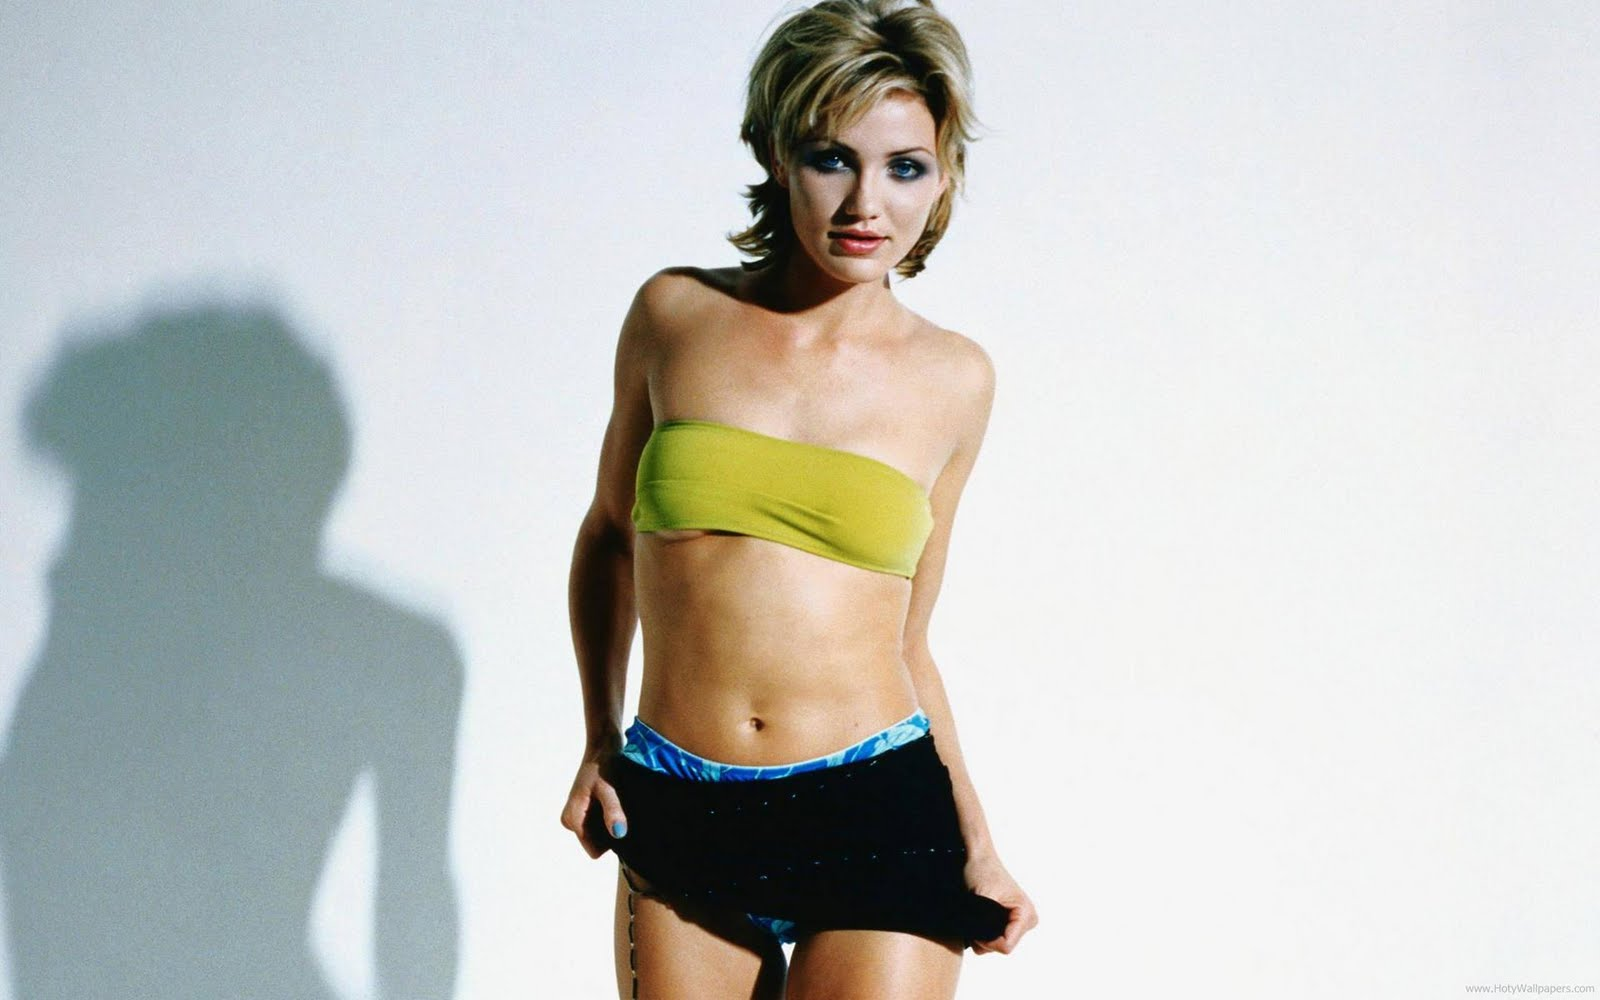 http://4.bp.blogspot.com/-EQJc0NYxI7Q/Tr0rE5e9ZqI/AAAAAAAAAdM/_EFtkJjFGYI/s1600/Cameron_Diaz_hd_photo_shoot-1600x1200.jpg